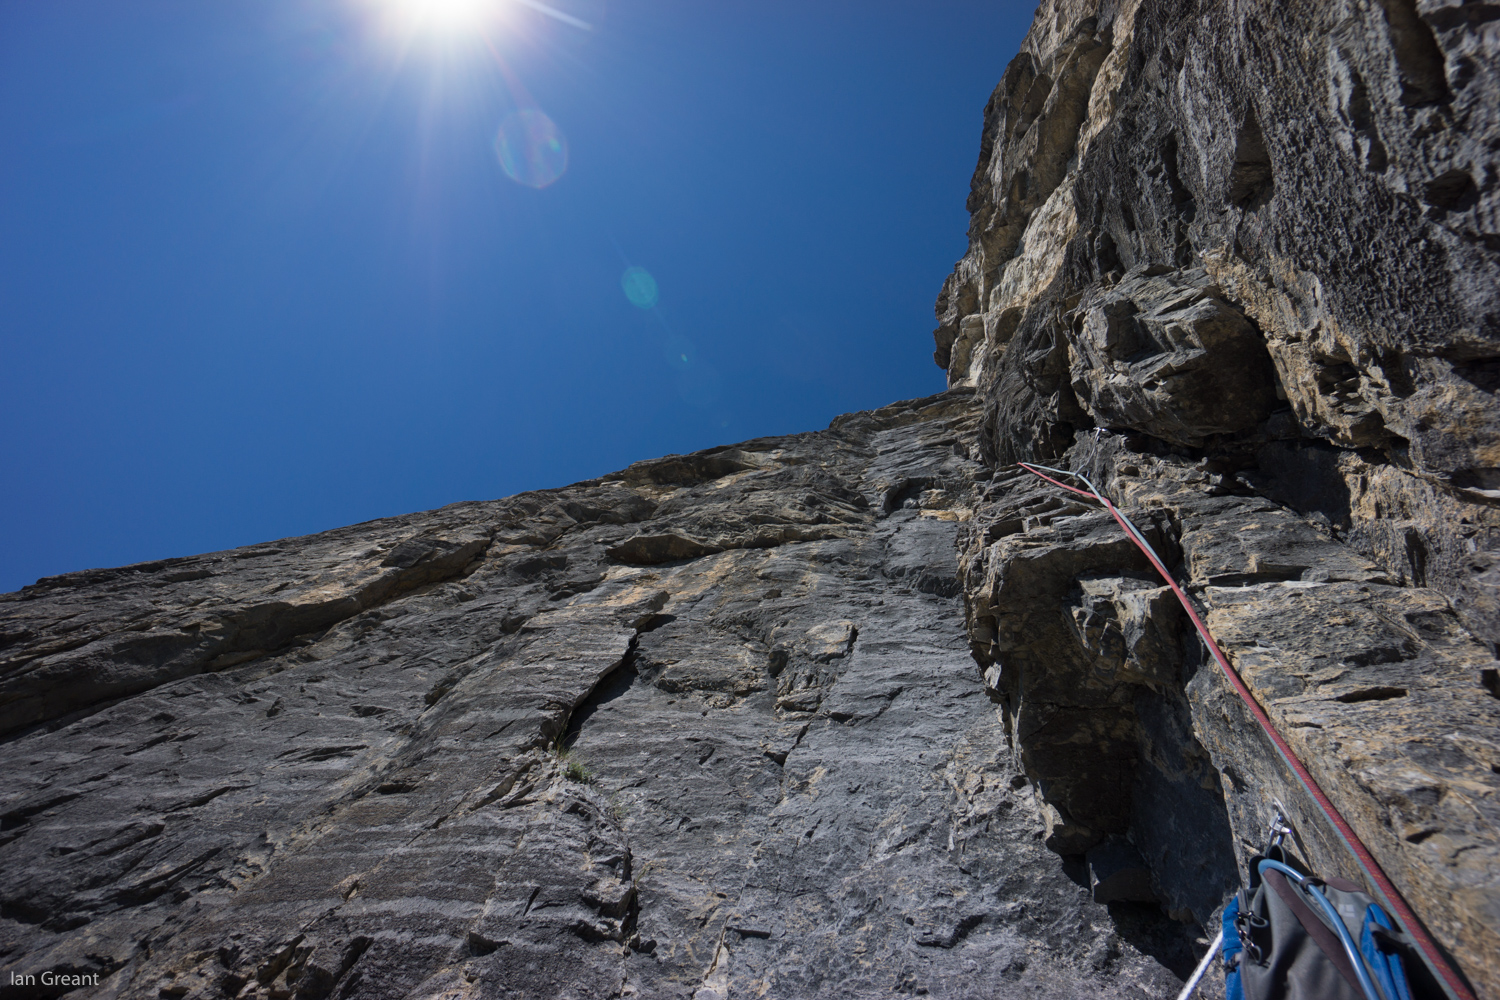 Jolene on the excellent pitch 5 of The Wraith